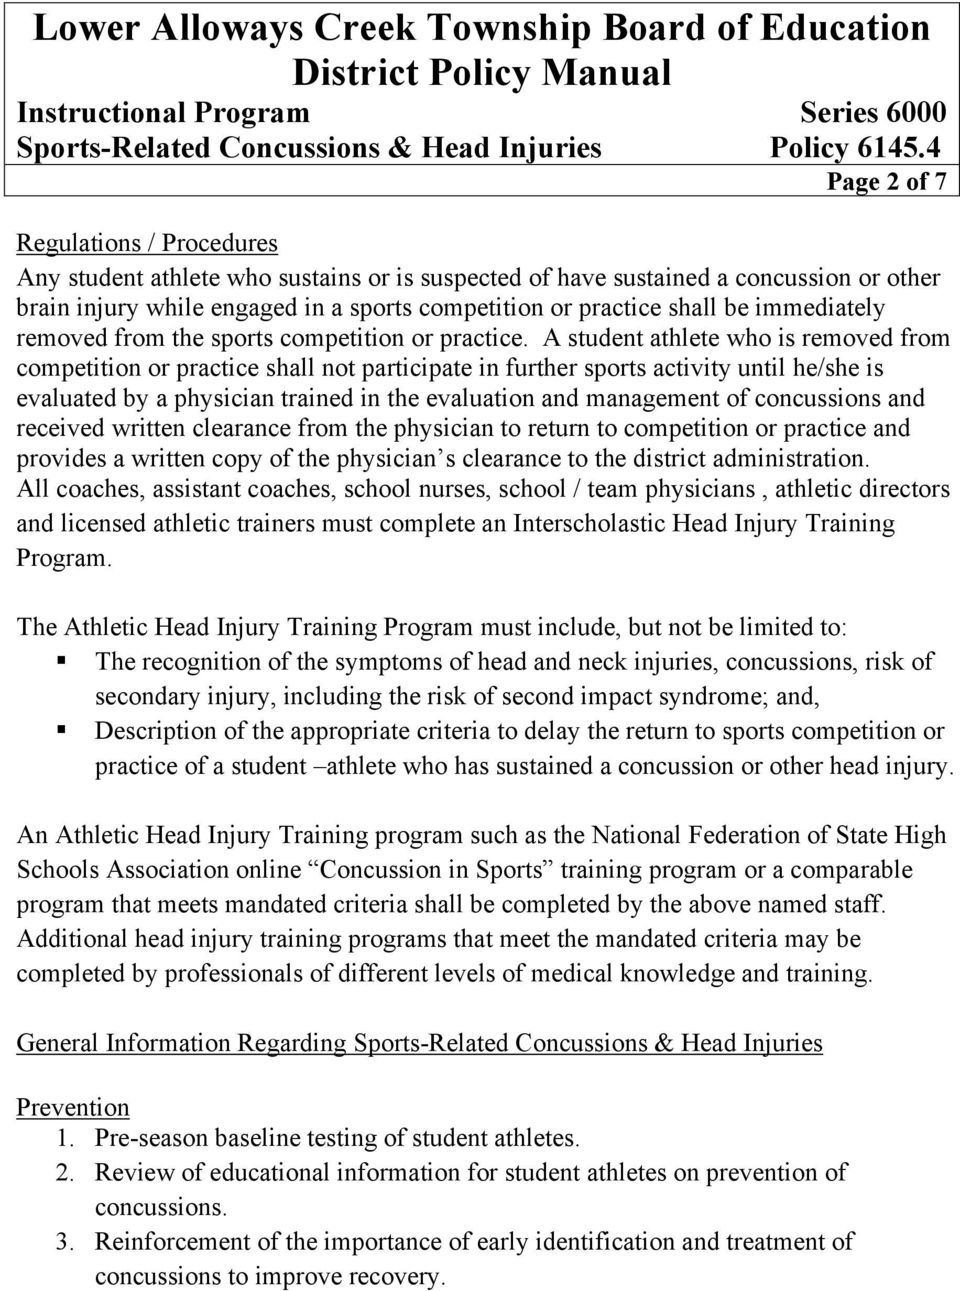 A student athlete who is removed from competition or practice shall not participate in further sports activity until he/she is evaluated by a physician trained in the evaluation and management of